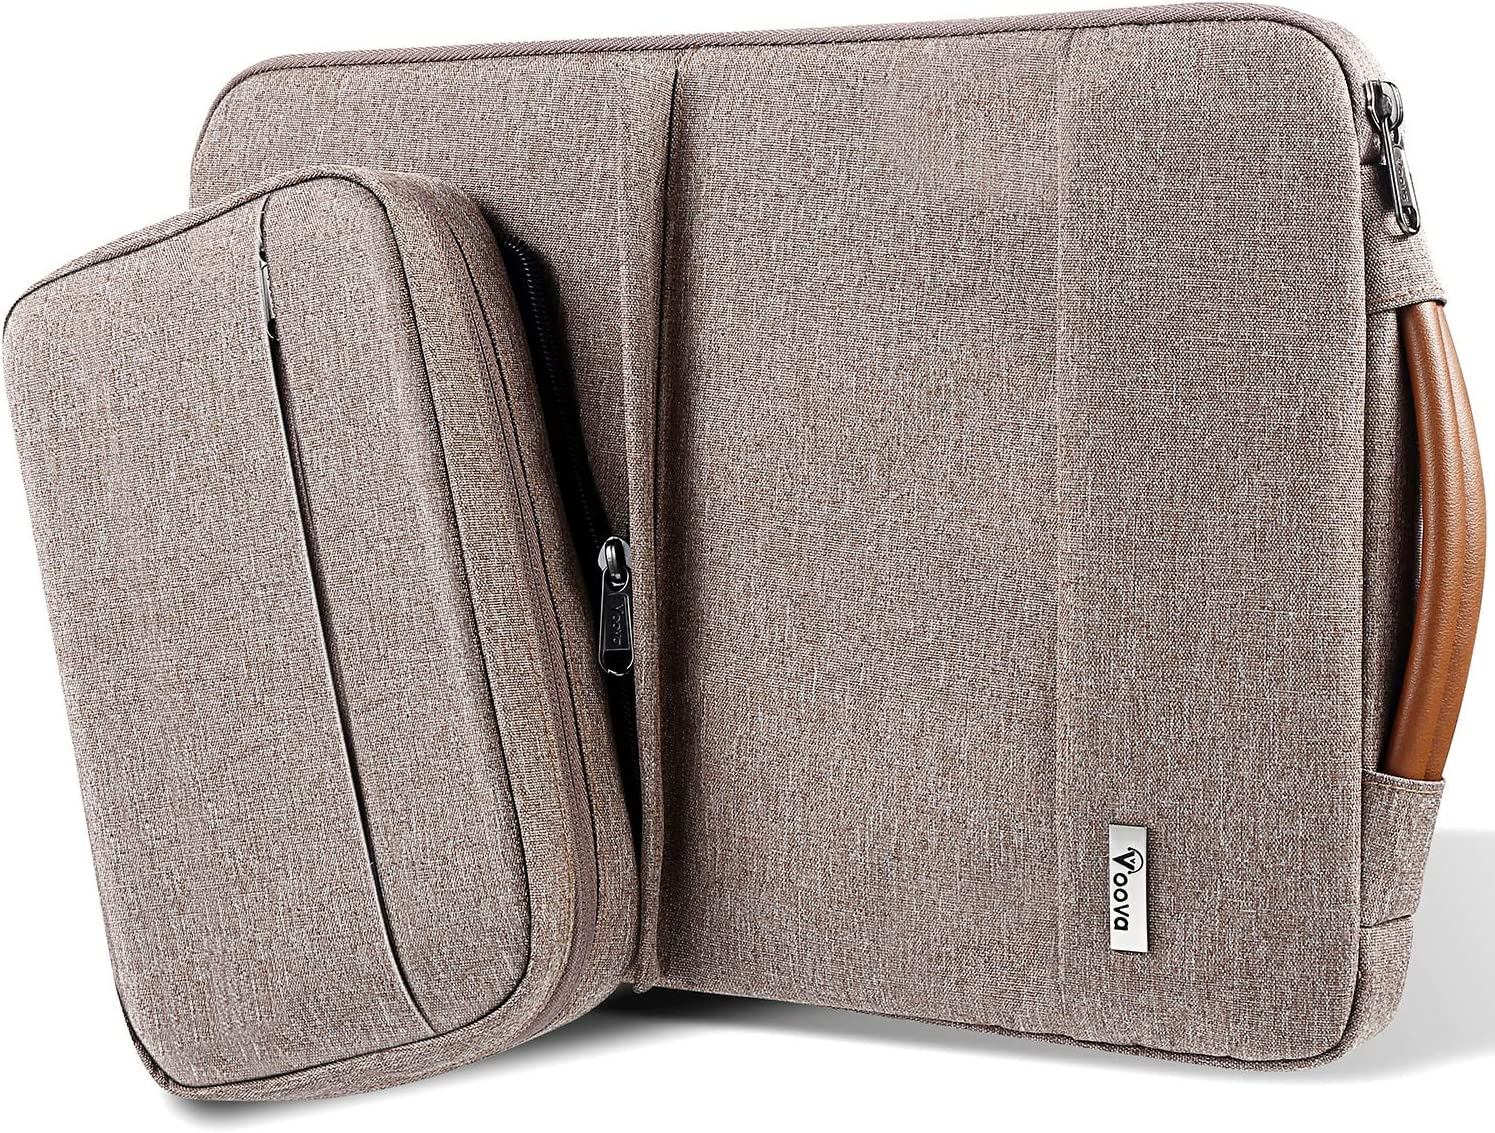 Voova 14-15.6 Inch Laptop Sleeve Carrying Case, Upgrade Smart Computer Bag with Detachable Accessory Pocket Compatible with MacBook Pro 15 16, Surface Book 2/Laptop 3 15 Chromebook, Waterproof, Khaki